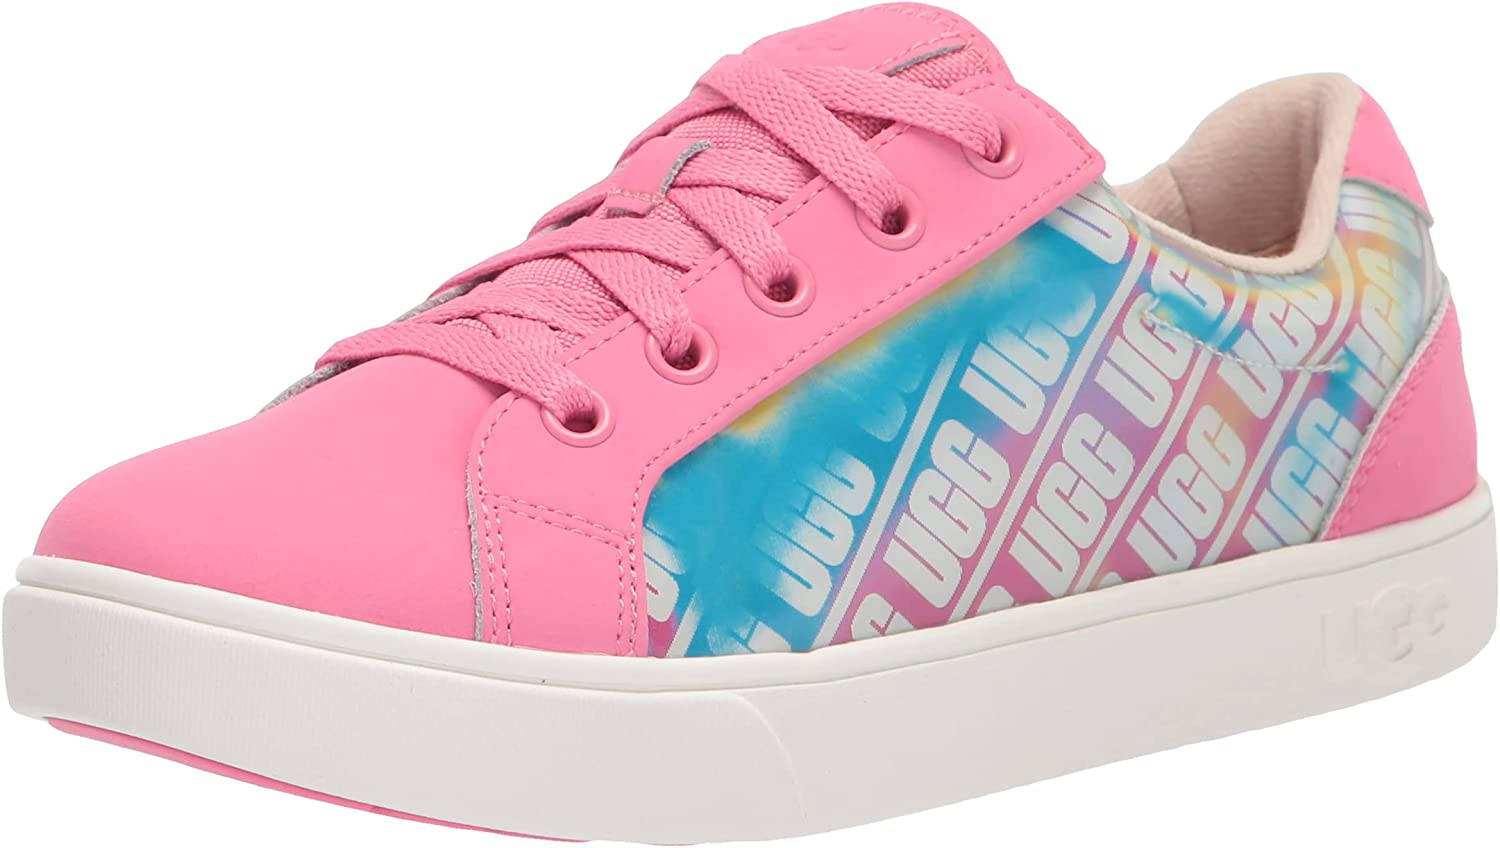 UGG Unisex-Child K Large special price !! Sneaker Zilo Chromatic Max 41% OFF